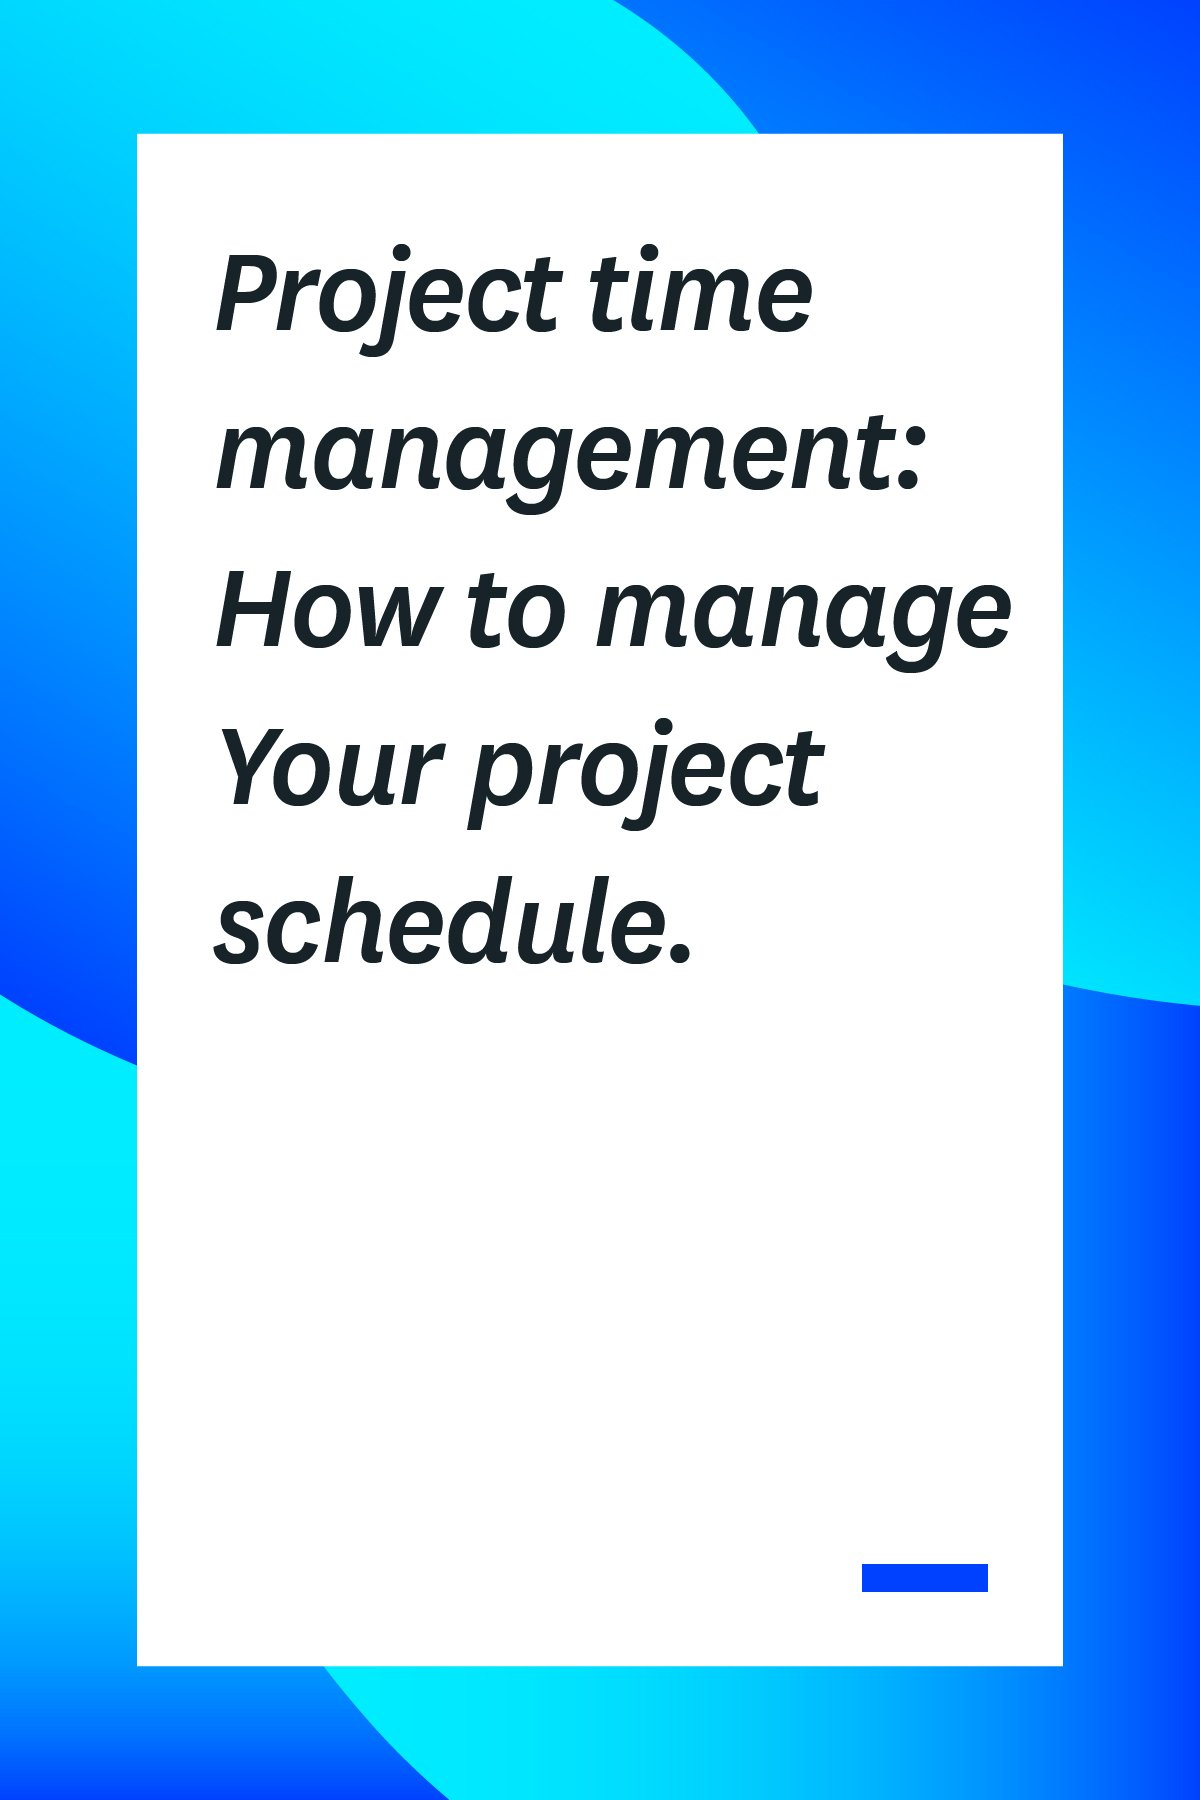 If you're managing a project, you need to master project time management. If everything is scheduled perfectly, but you don't manage your time correctly, the project could still end in failure. Here's our tips to ensure that doesn't happen! #projectmanagement #projectmanagementtips